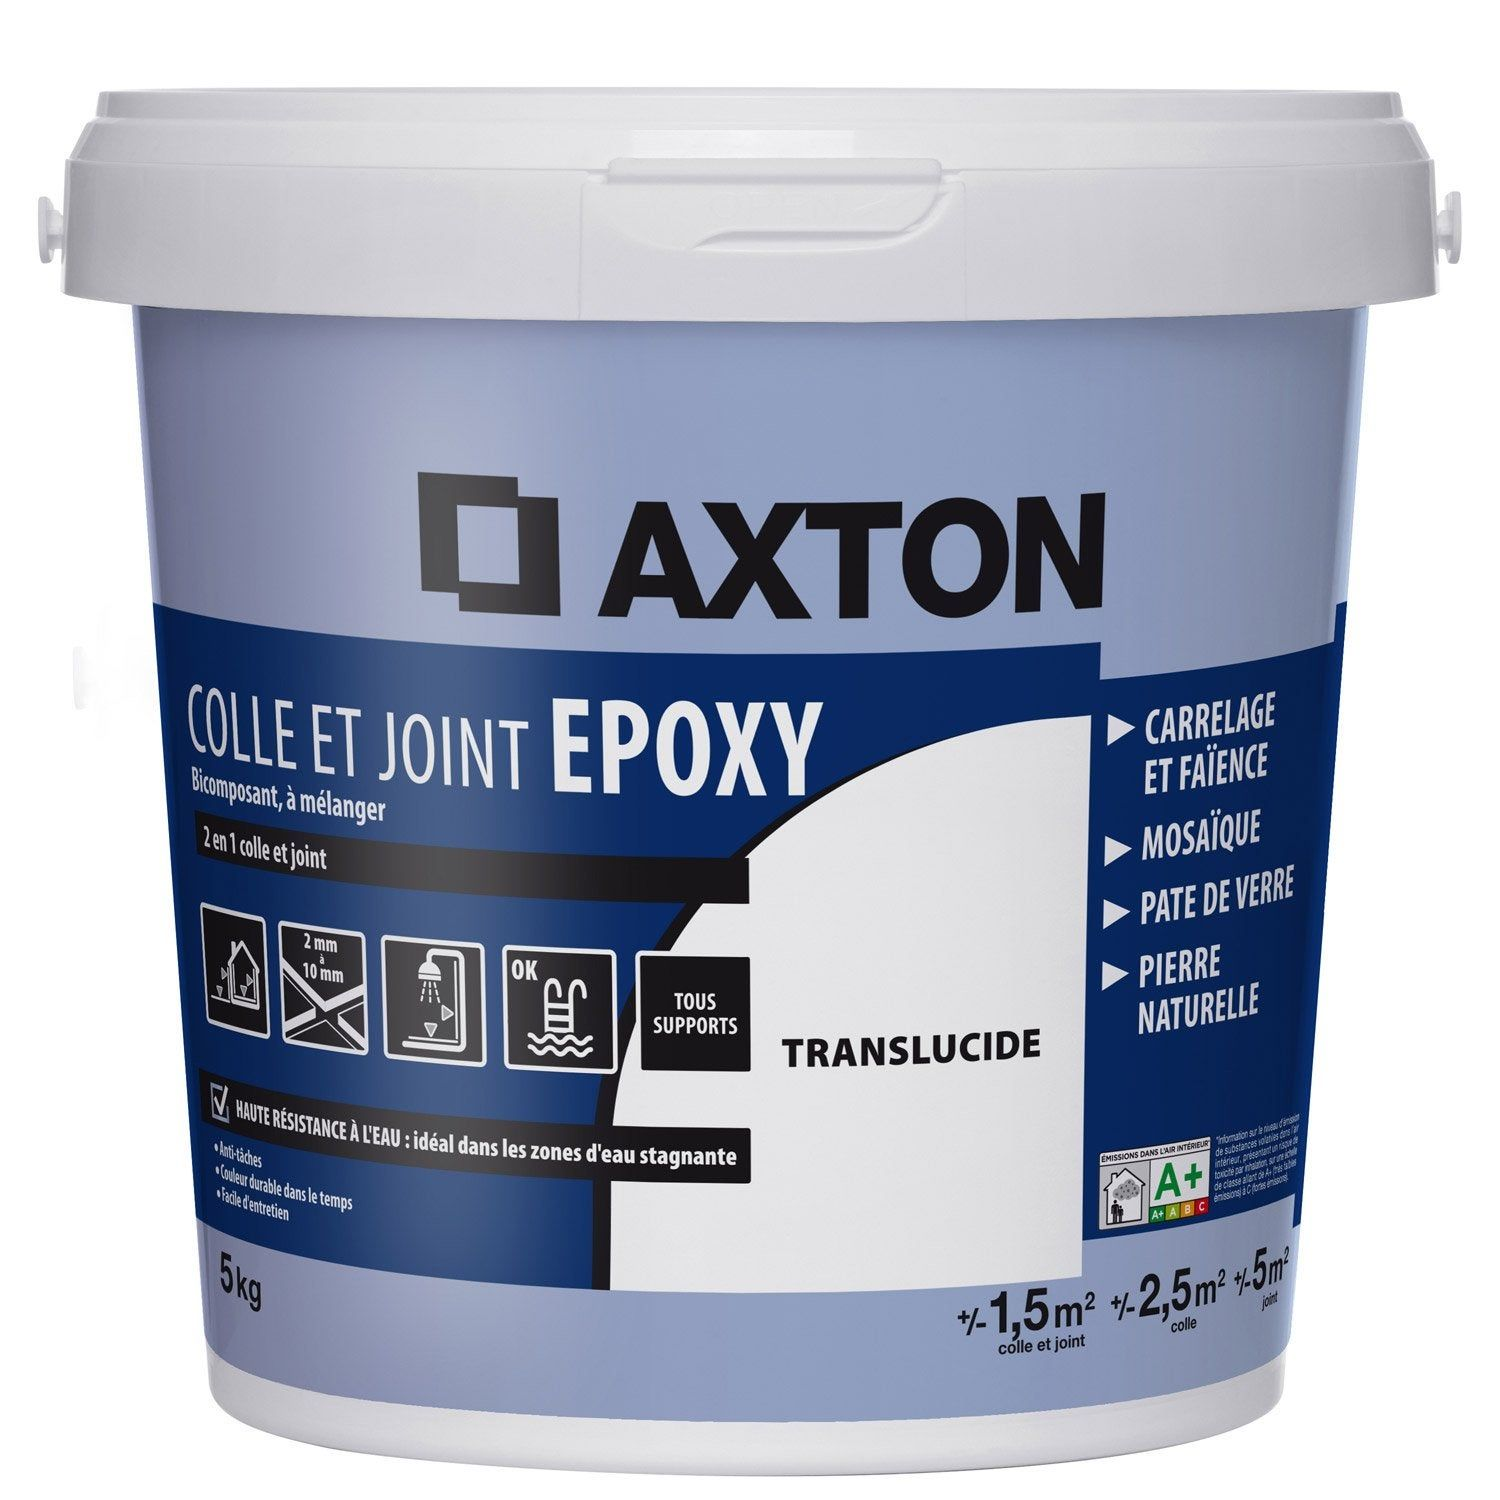 Colle Et Joint Epoxy Translucide Axton 5m Epoxy Gris Clair Et Collant